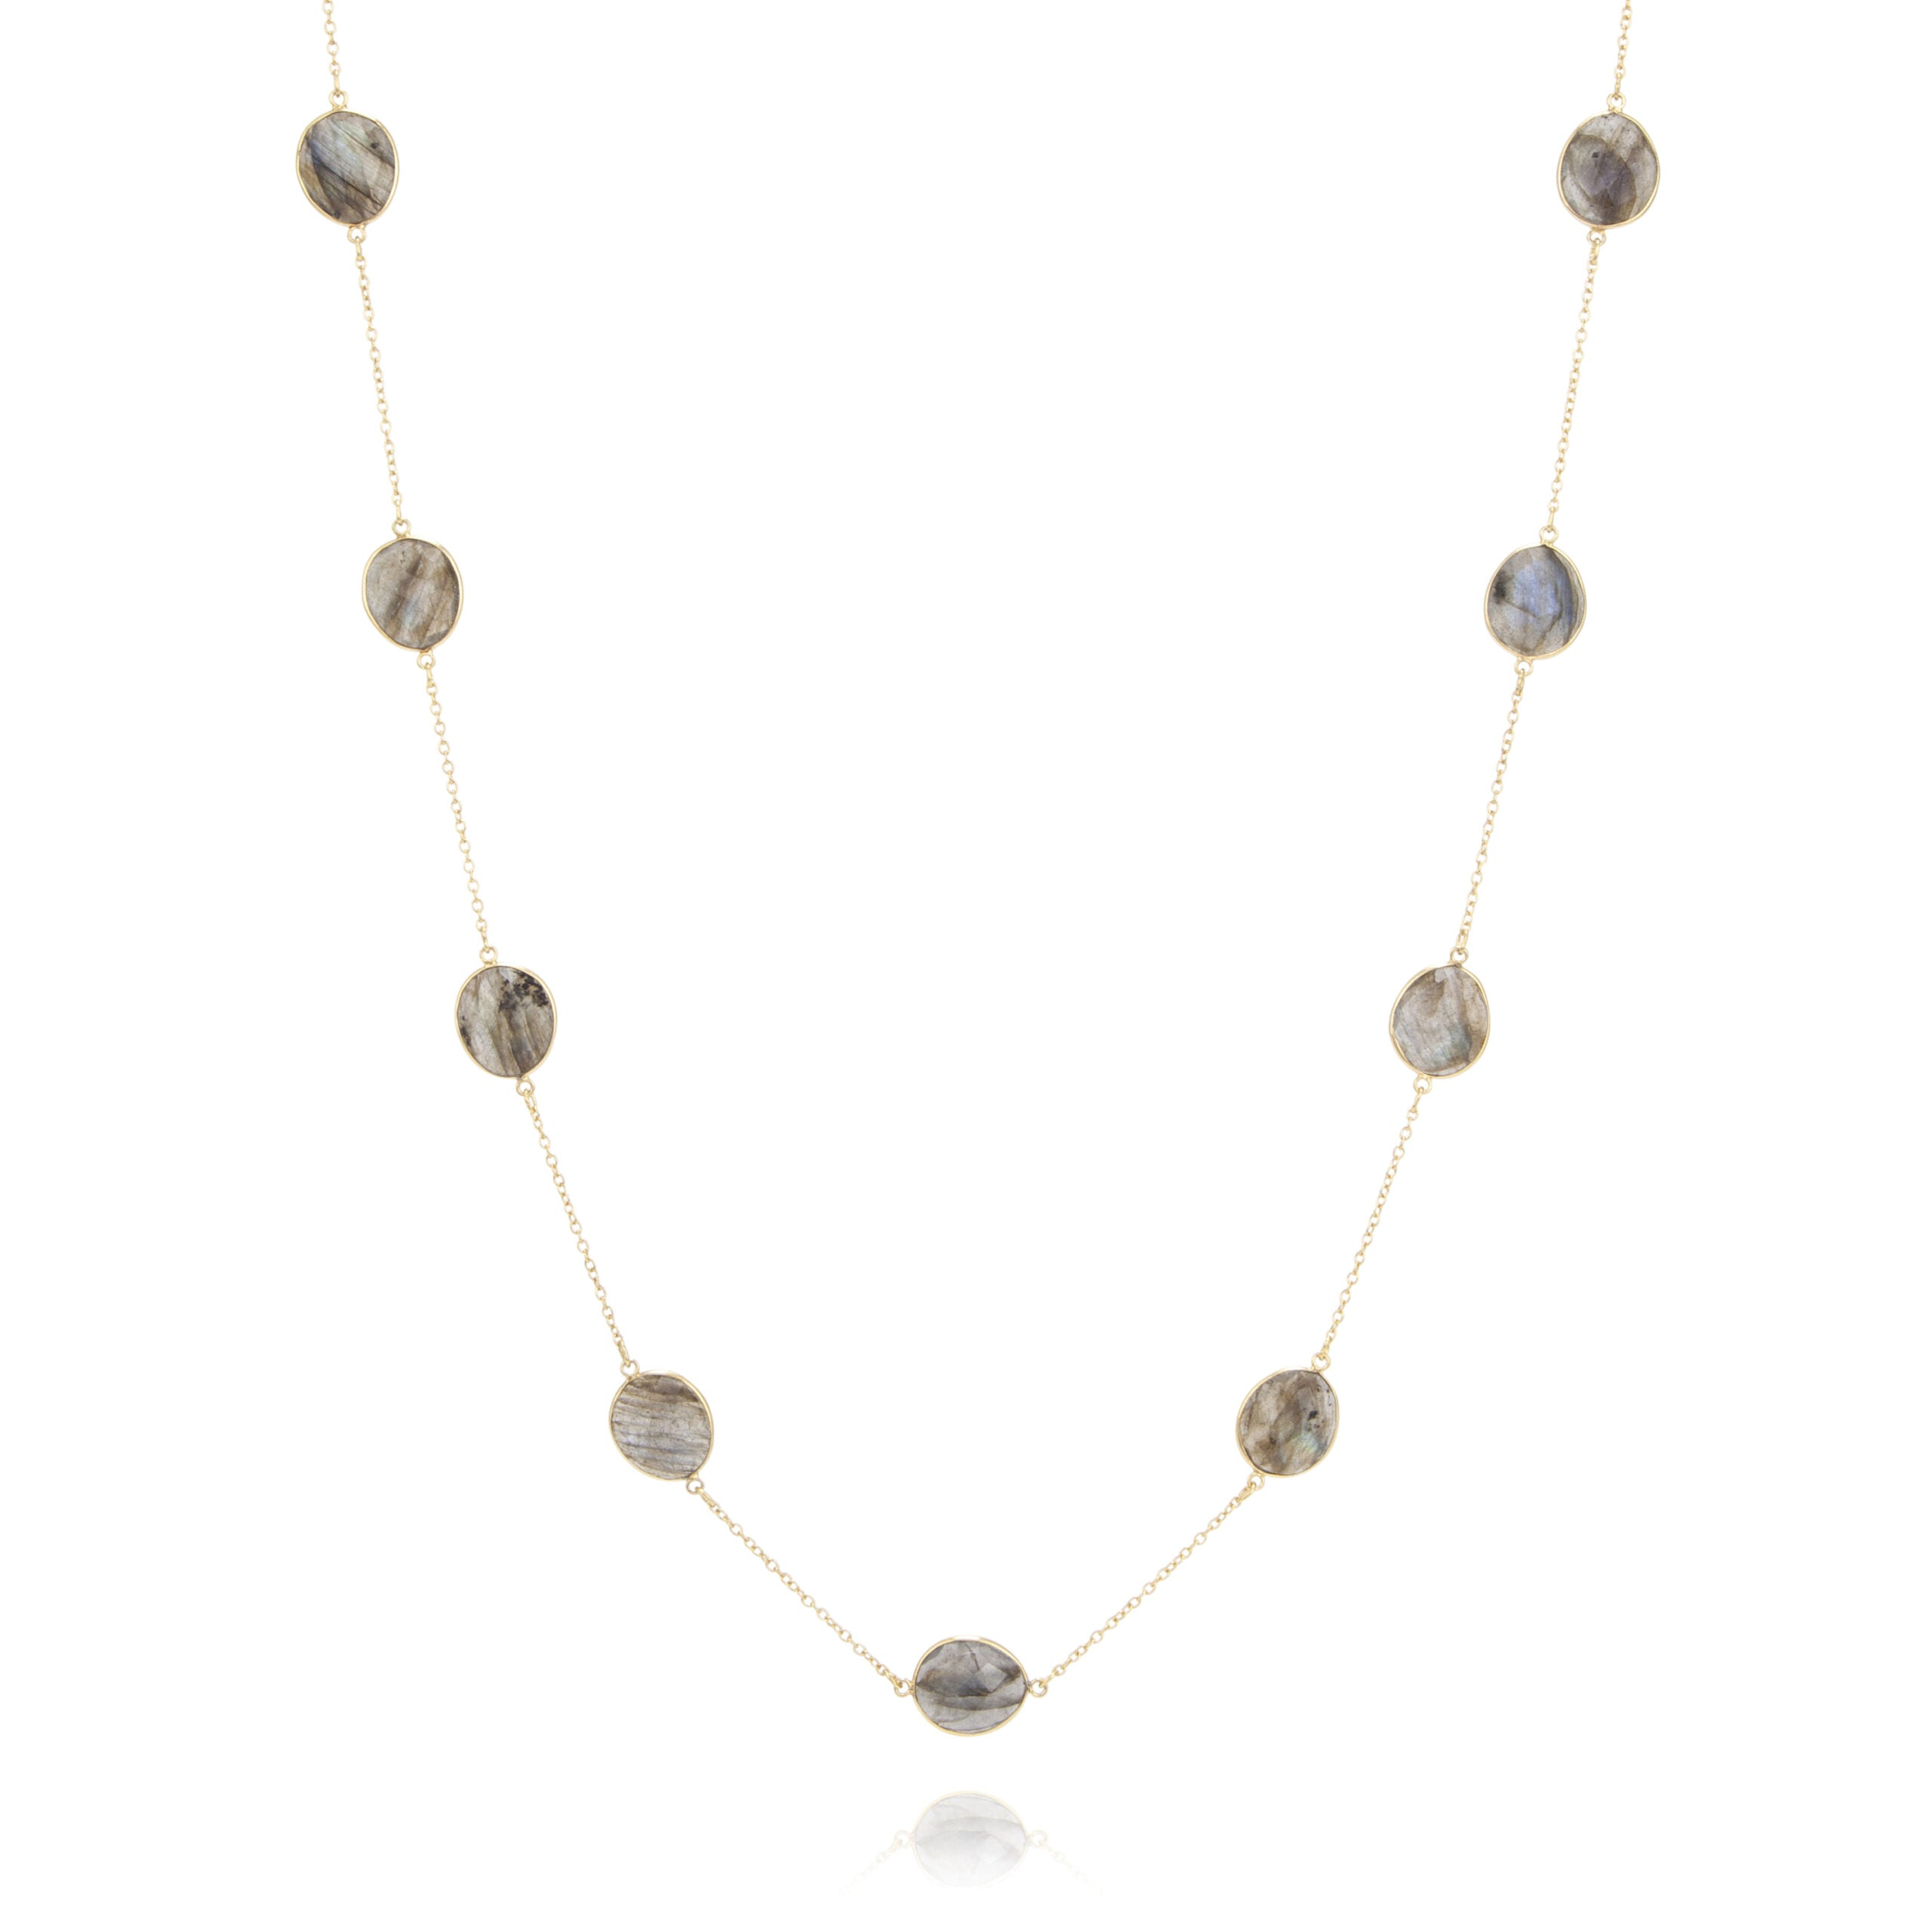 Maia Necklace - Labradorite